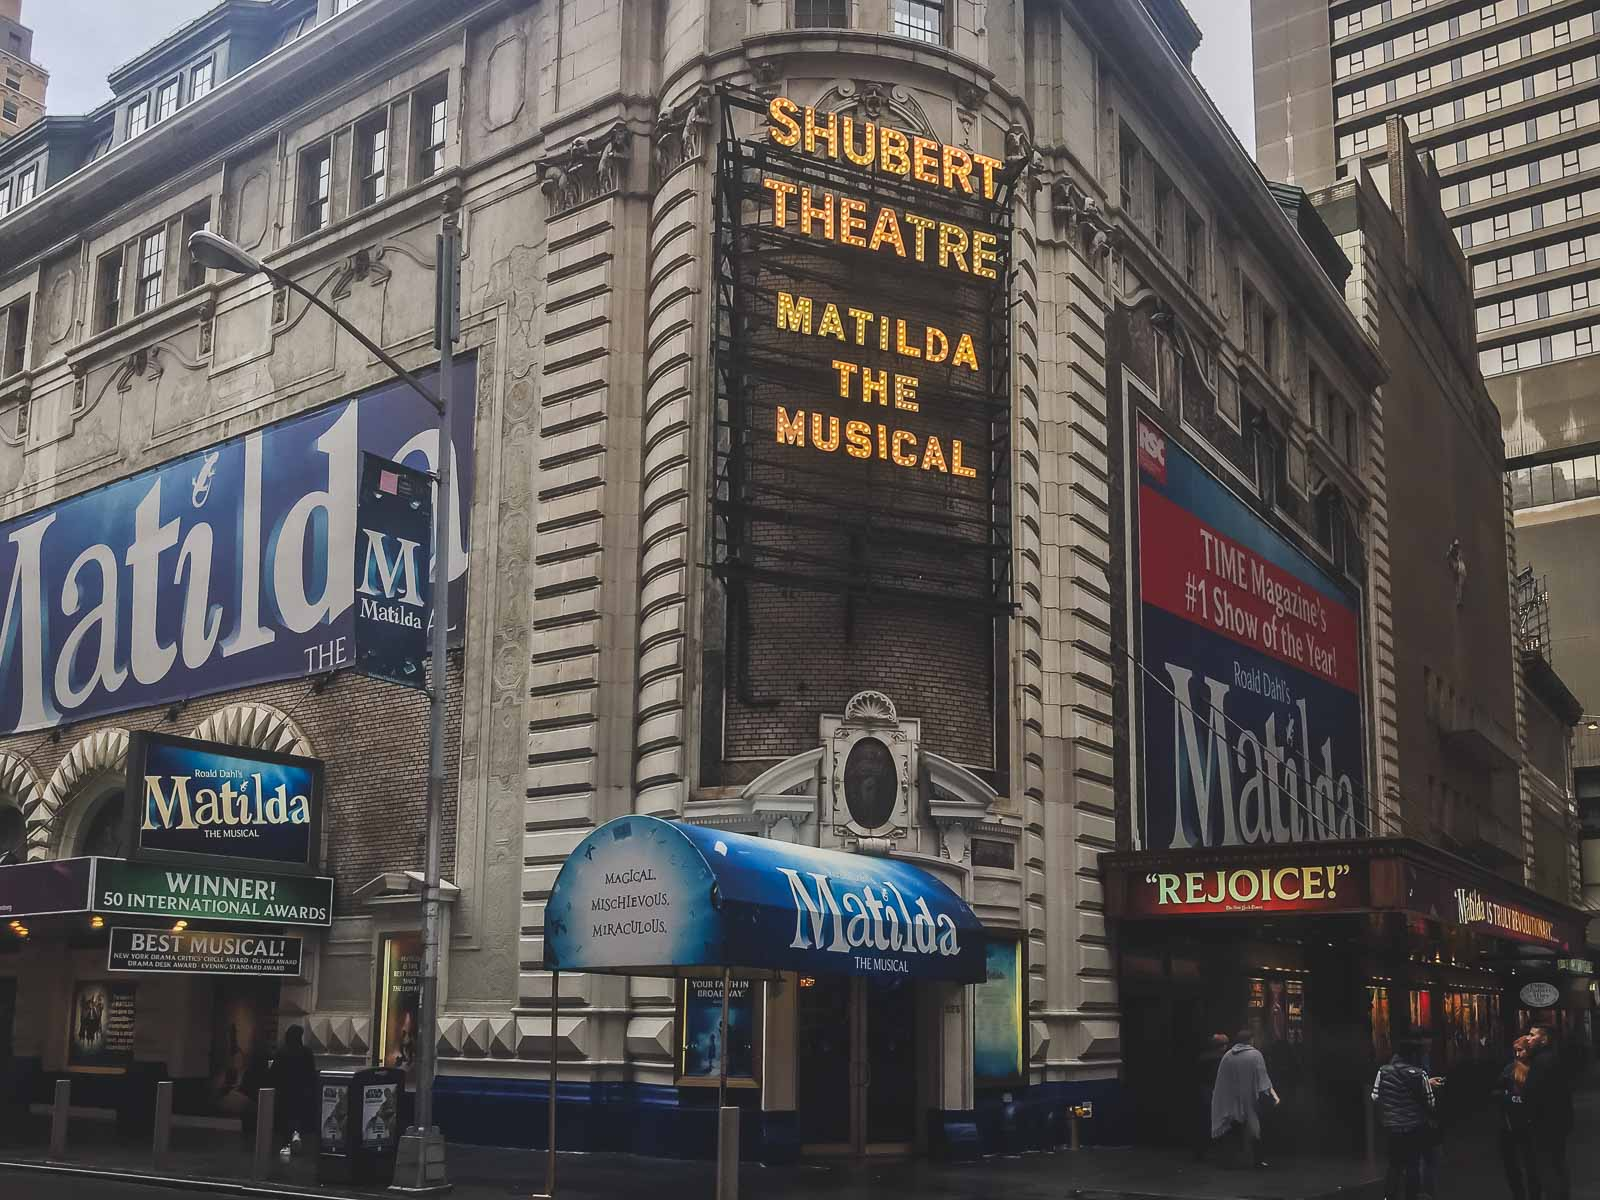 Shubert Alley in Times Square New York City